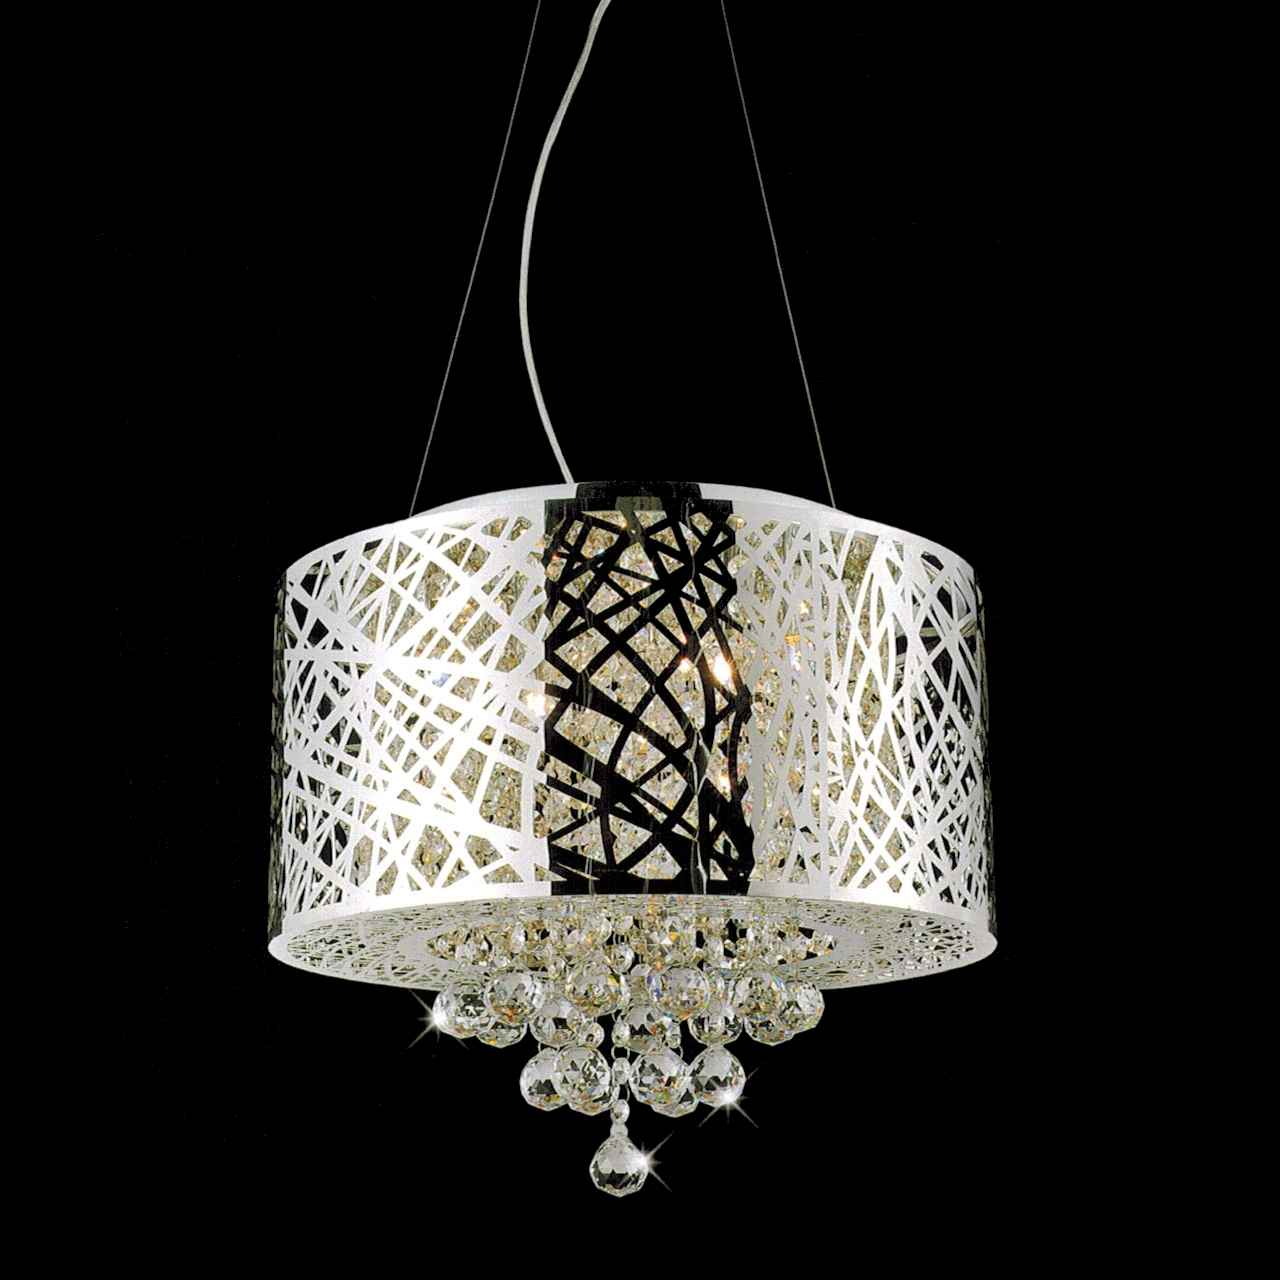 drum shade crystal round pendant chandelier stainless steel 5 lights. Black Bedroom Furniture Sets. Home Design Ideas